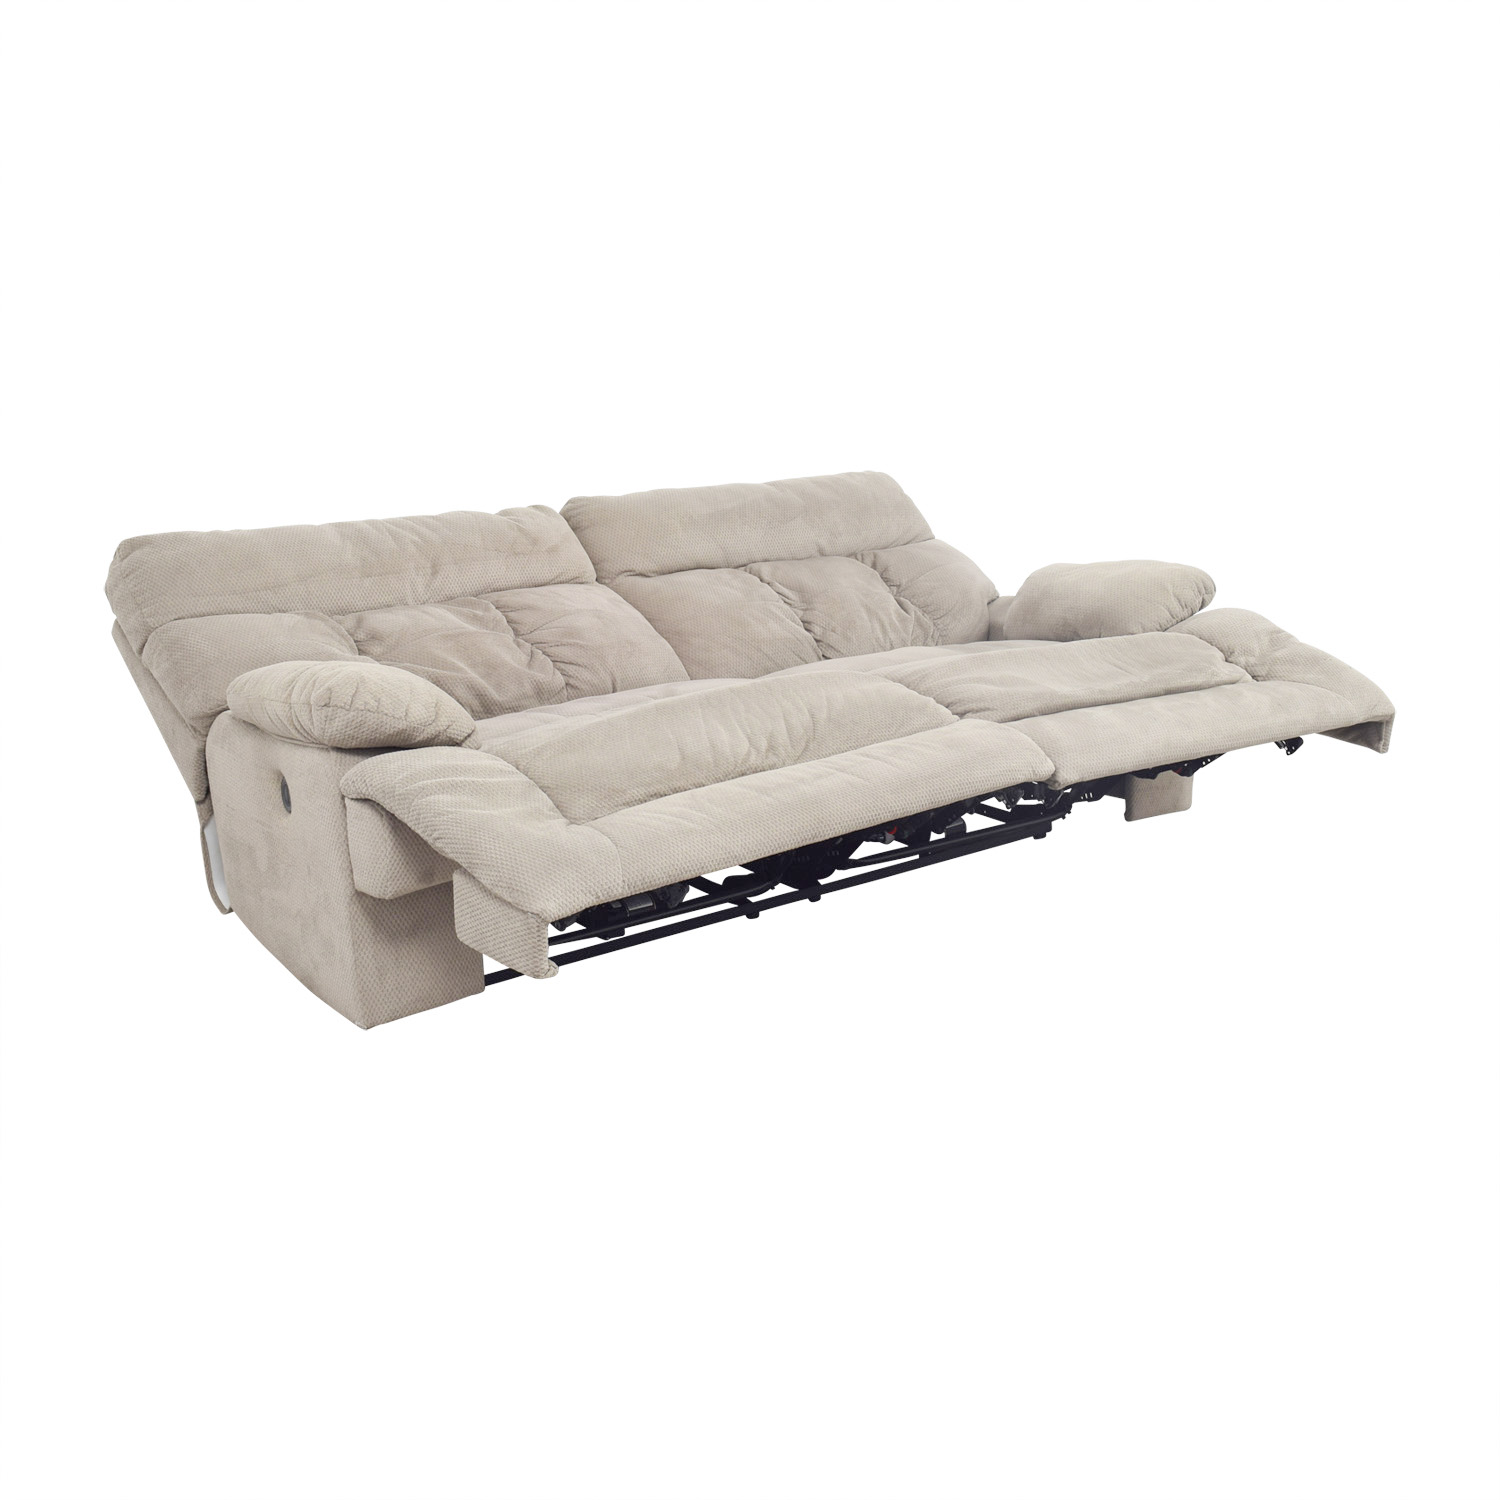 75 Off Ashley Furniture Ashley Furniture Beige Reclining Sofa Chairs